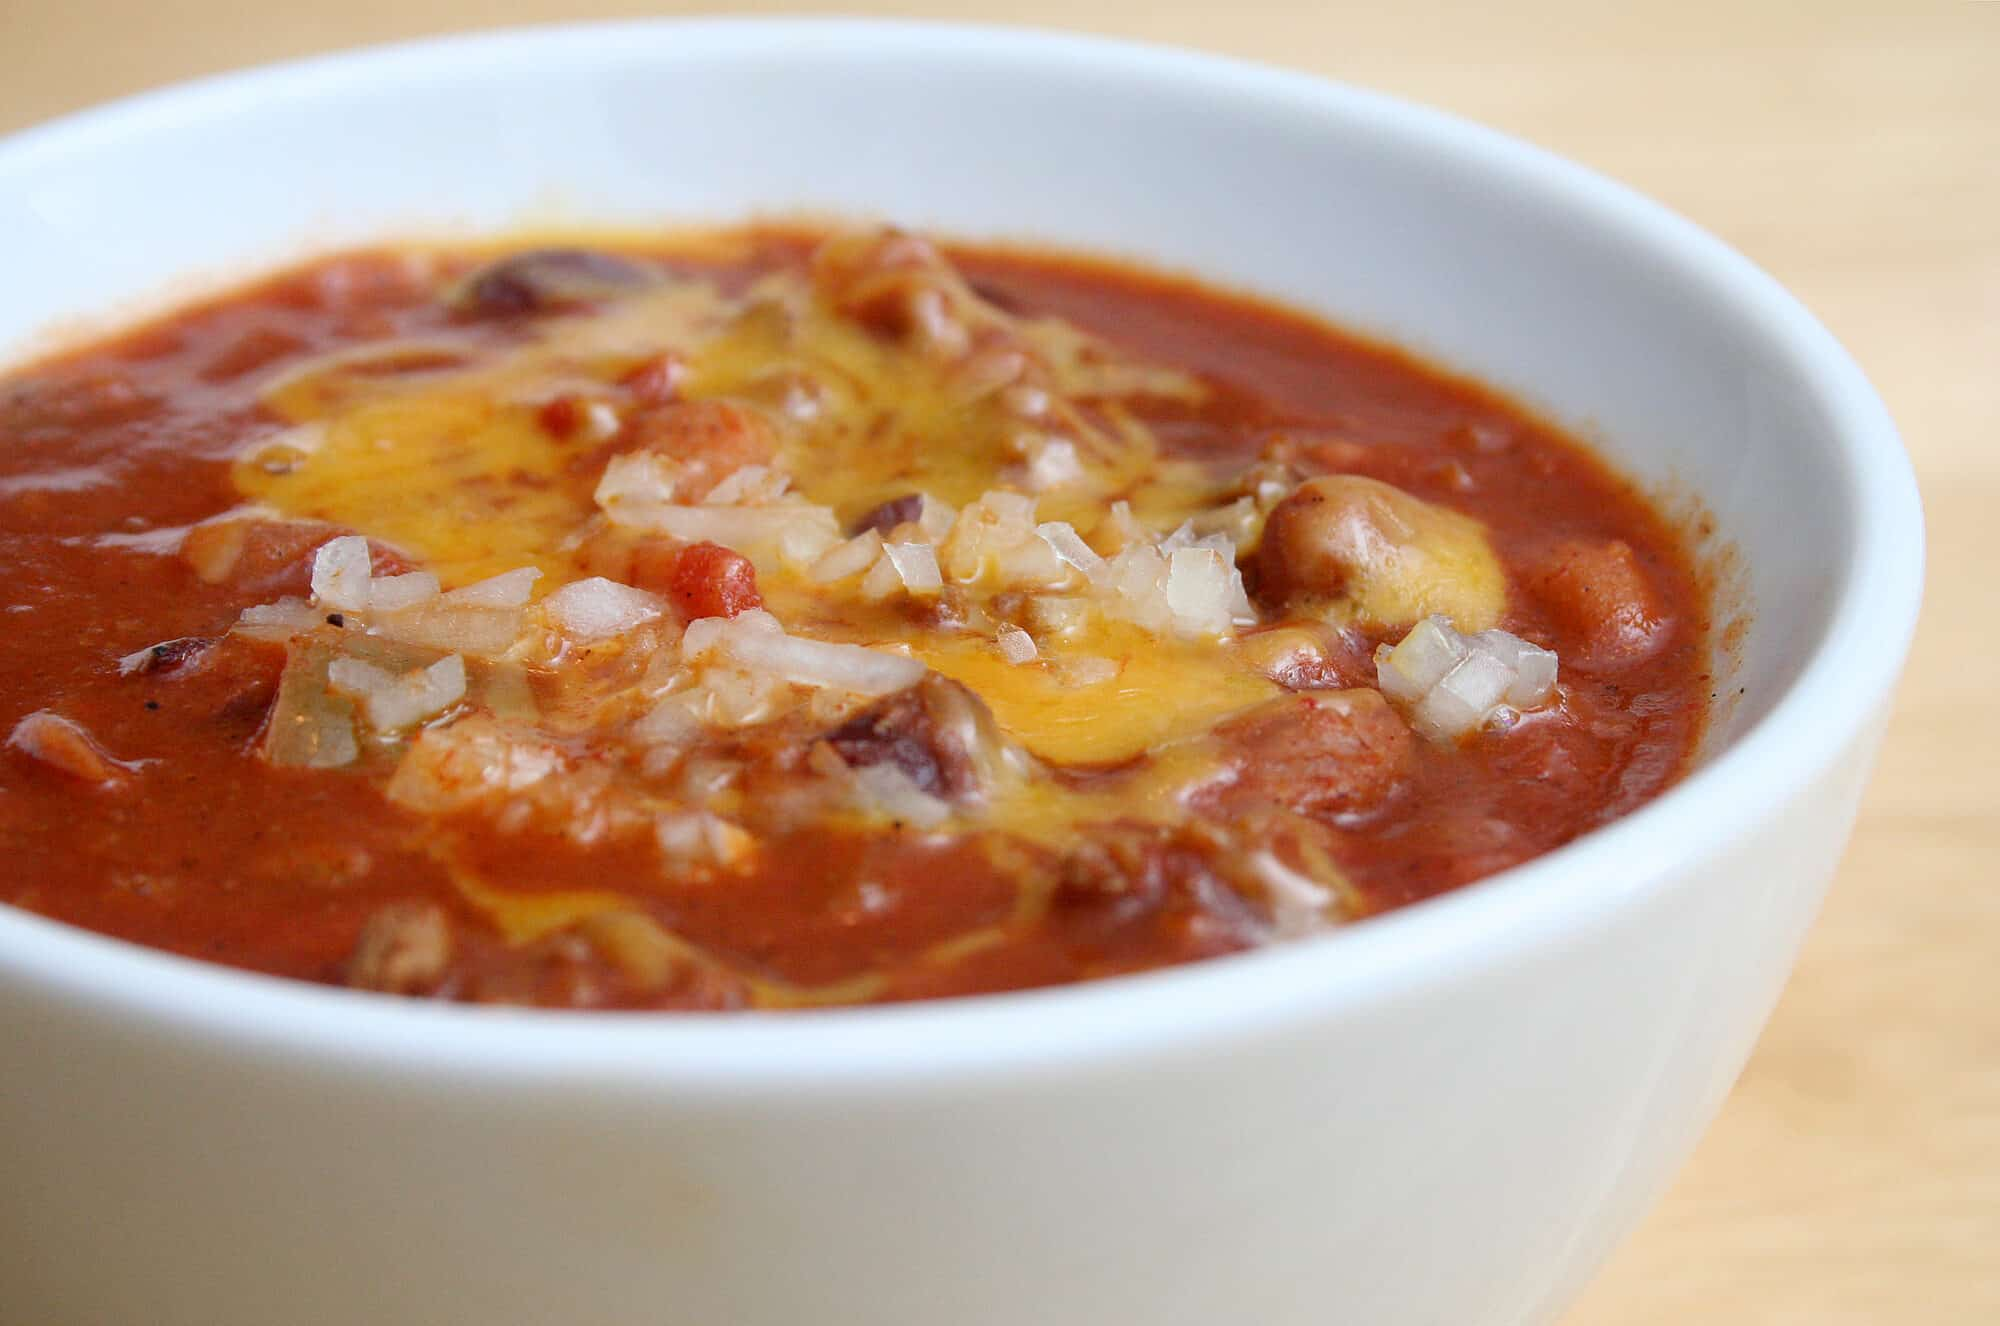 Need For Heat? How To Make Your Chili Spicier